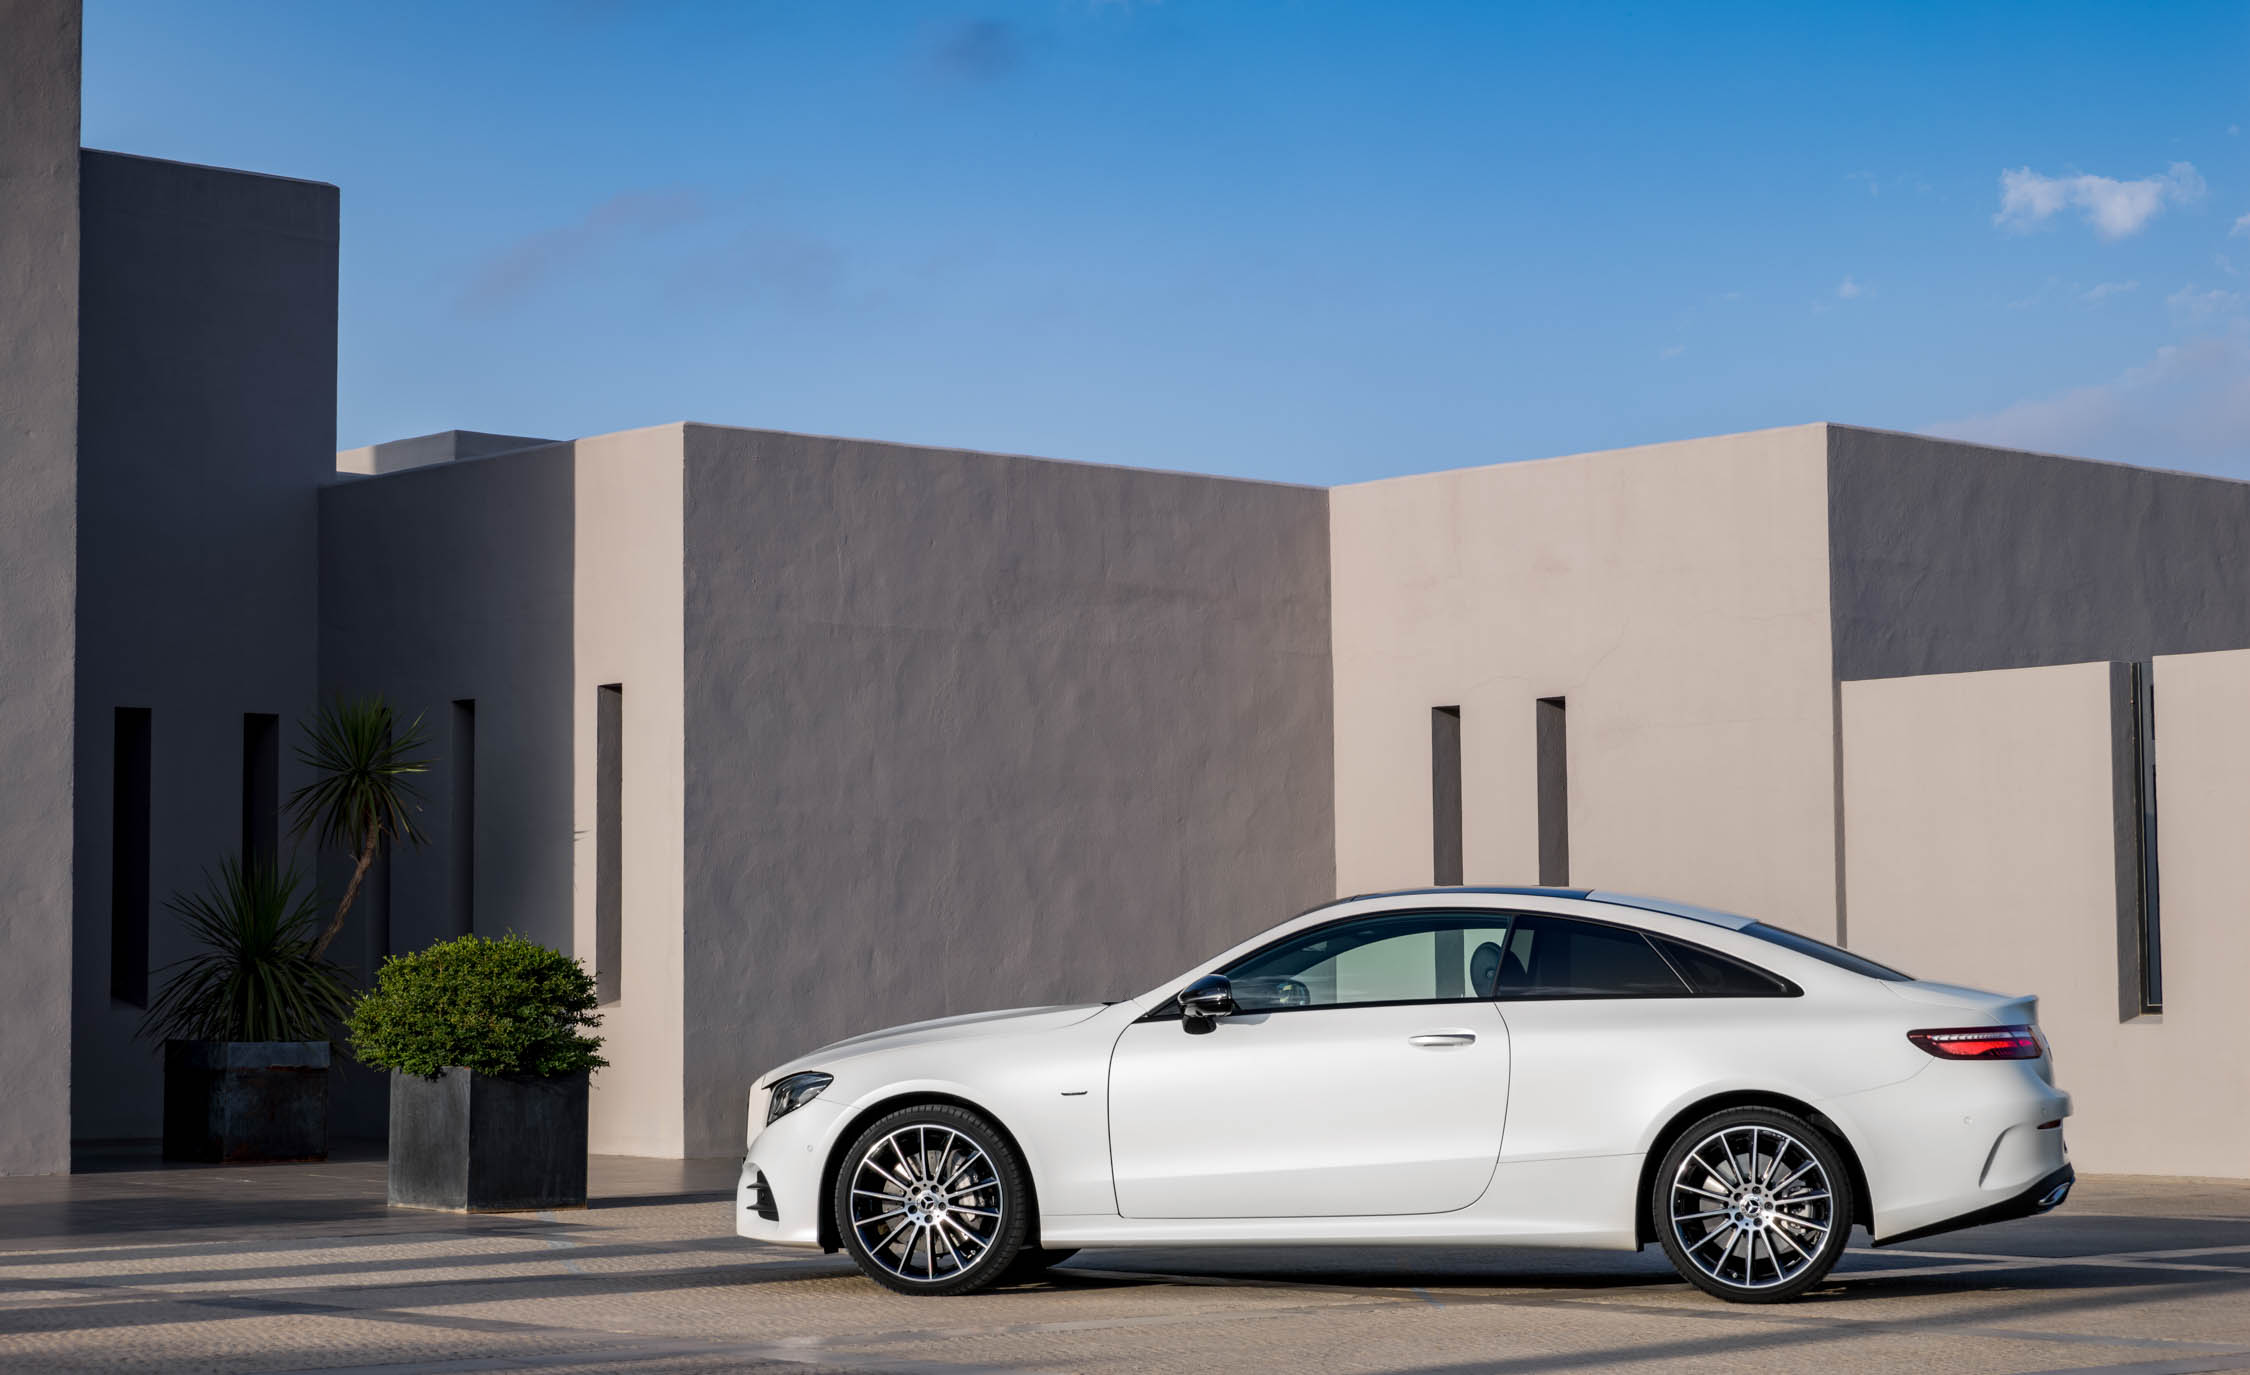 2018 Mercedes Benz E400 Coupe (Photo 1 of 60)